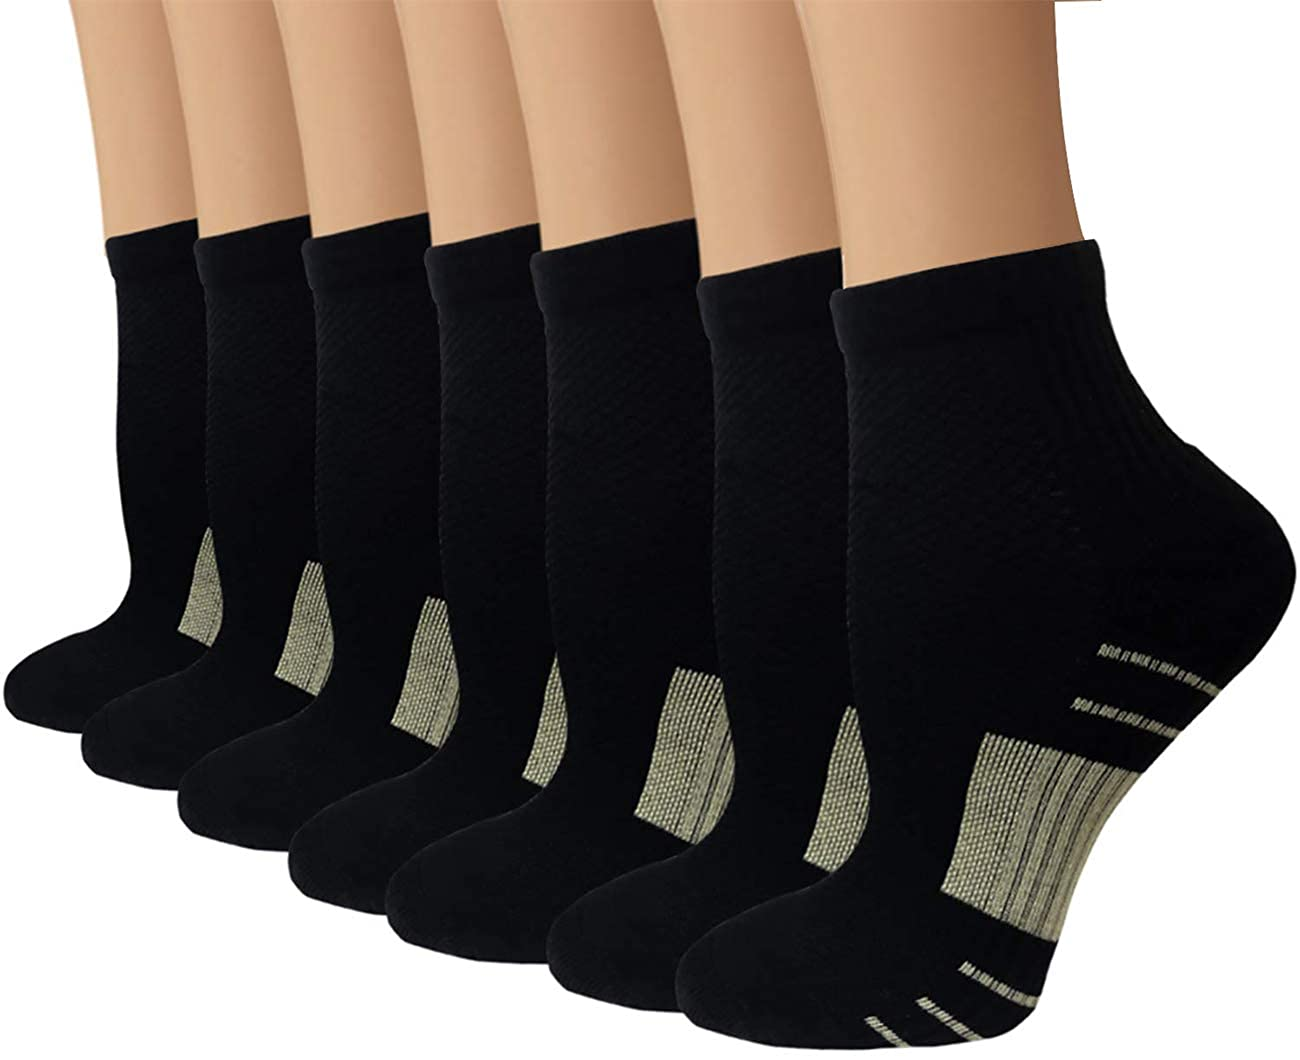 高価値 男性 Black/女性用ニーハイGraduated/ Compression Socks (7パック) (7パック) – 15 – 20 mm Hg – 通気性 – 防止疲労/腫れ B07Q5RRRSW A1 Black 7 Pairs Small/ Medium Small/ Medium|A1 Black 7 Pairs, 守山区:1918a0a0 --- ballyshannonshow.com